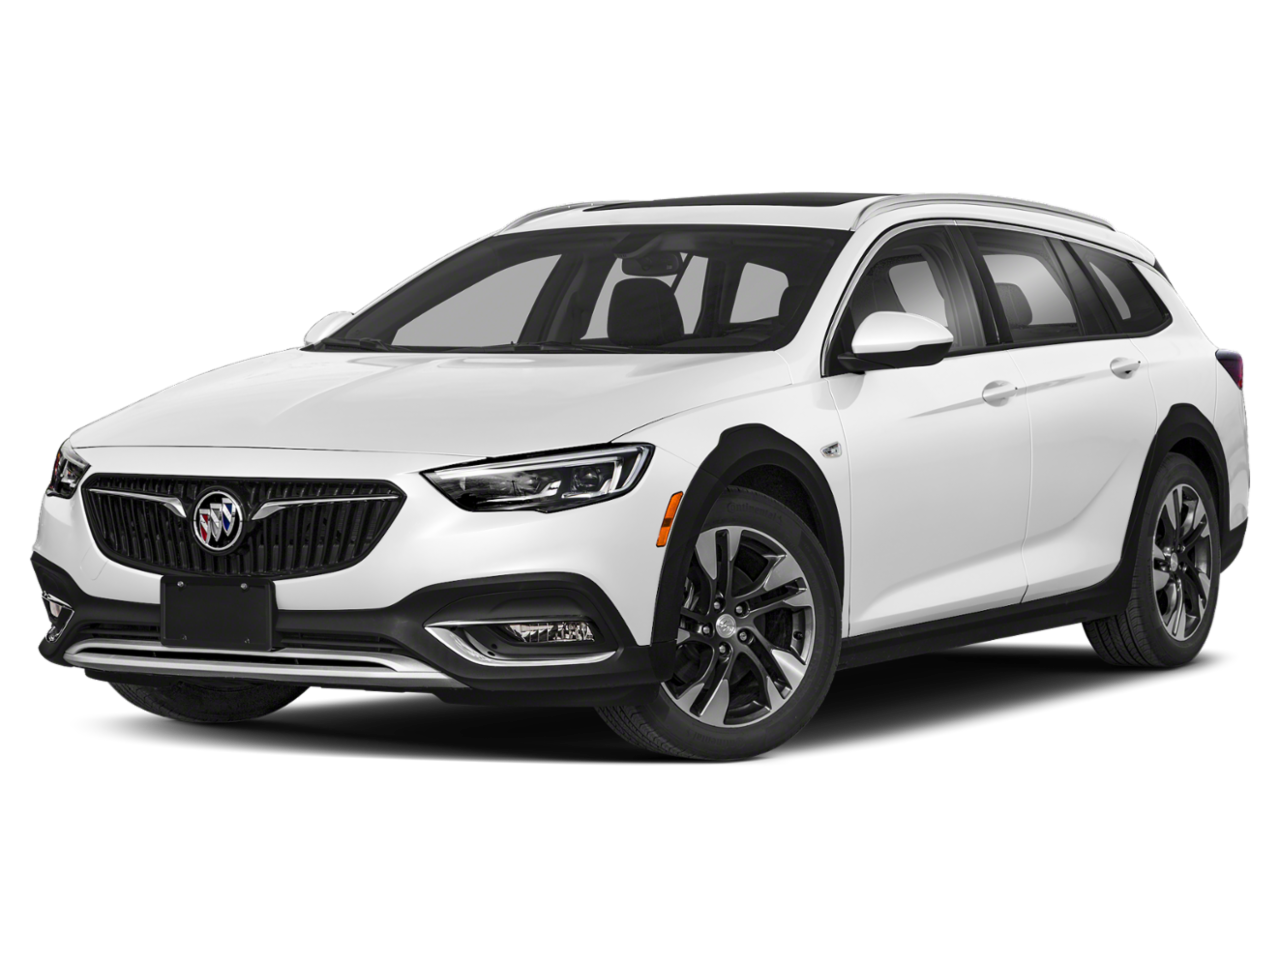 Buick 2020 Regal TourX Standard